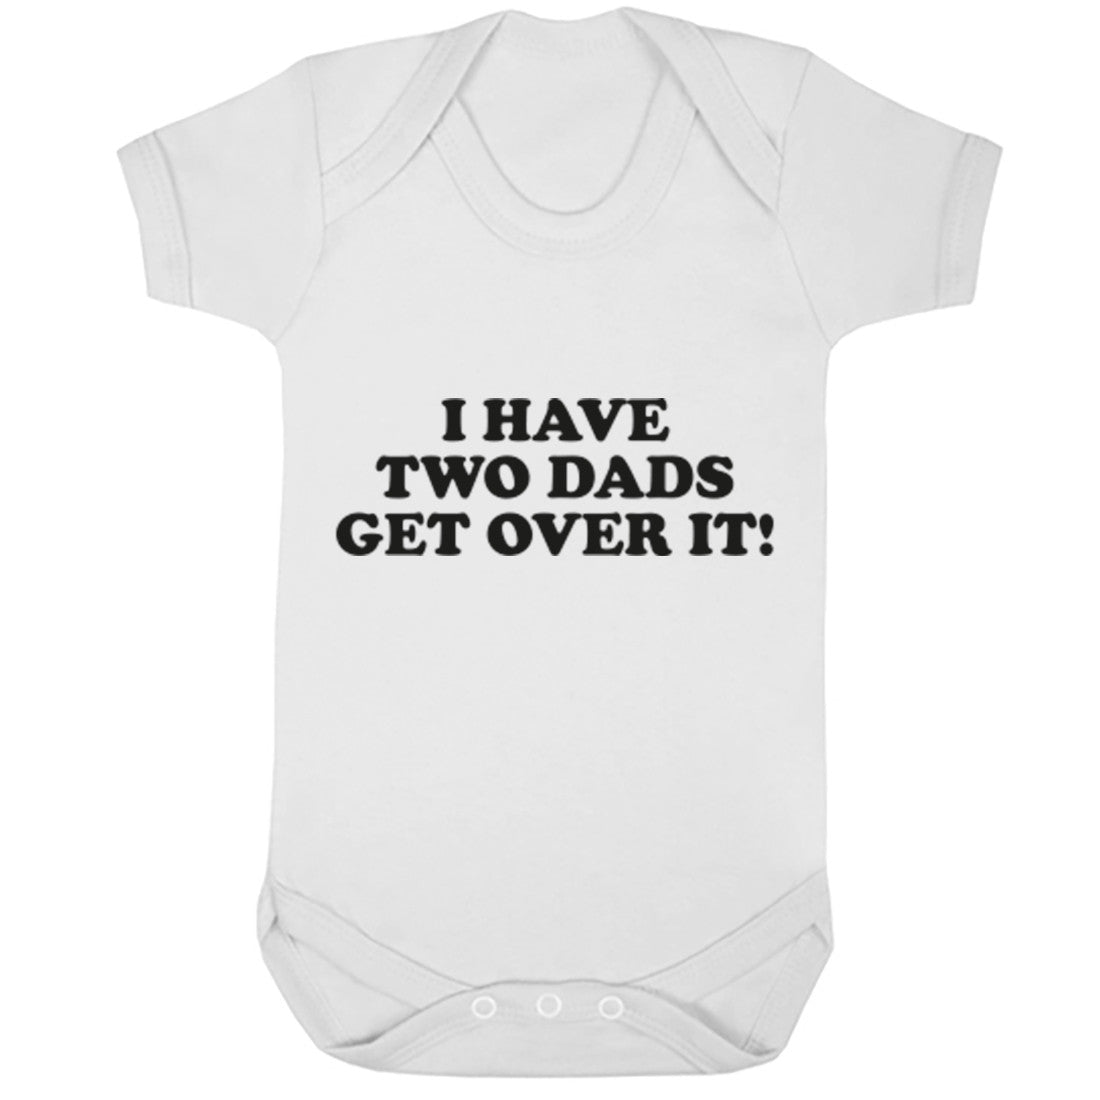 I Have Two Dads Baby Vest K1289 - Illustrated Identity Ltd.